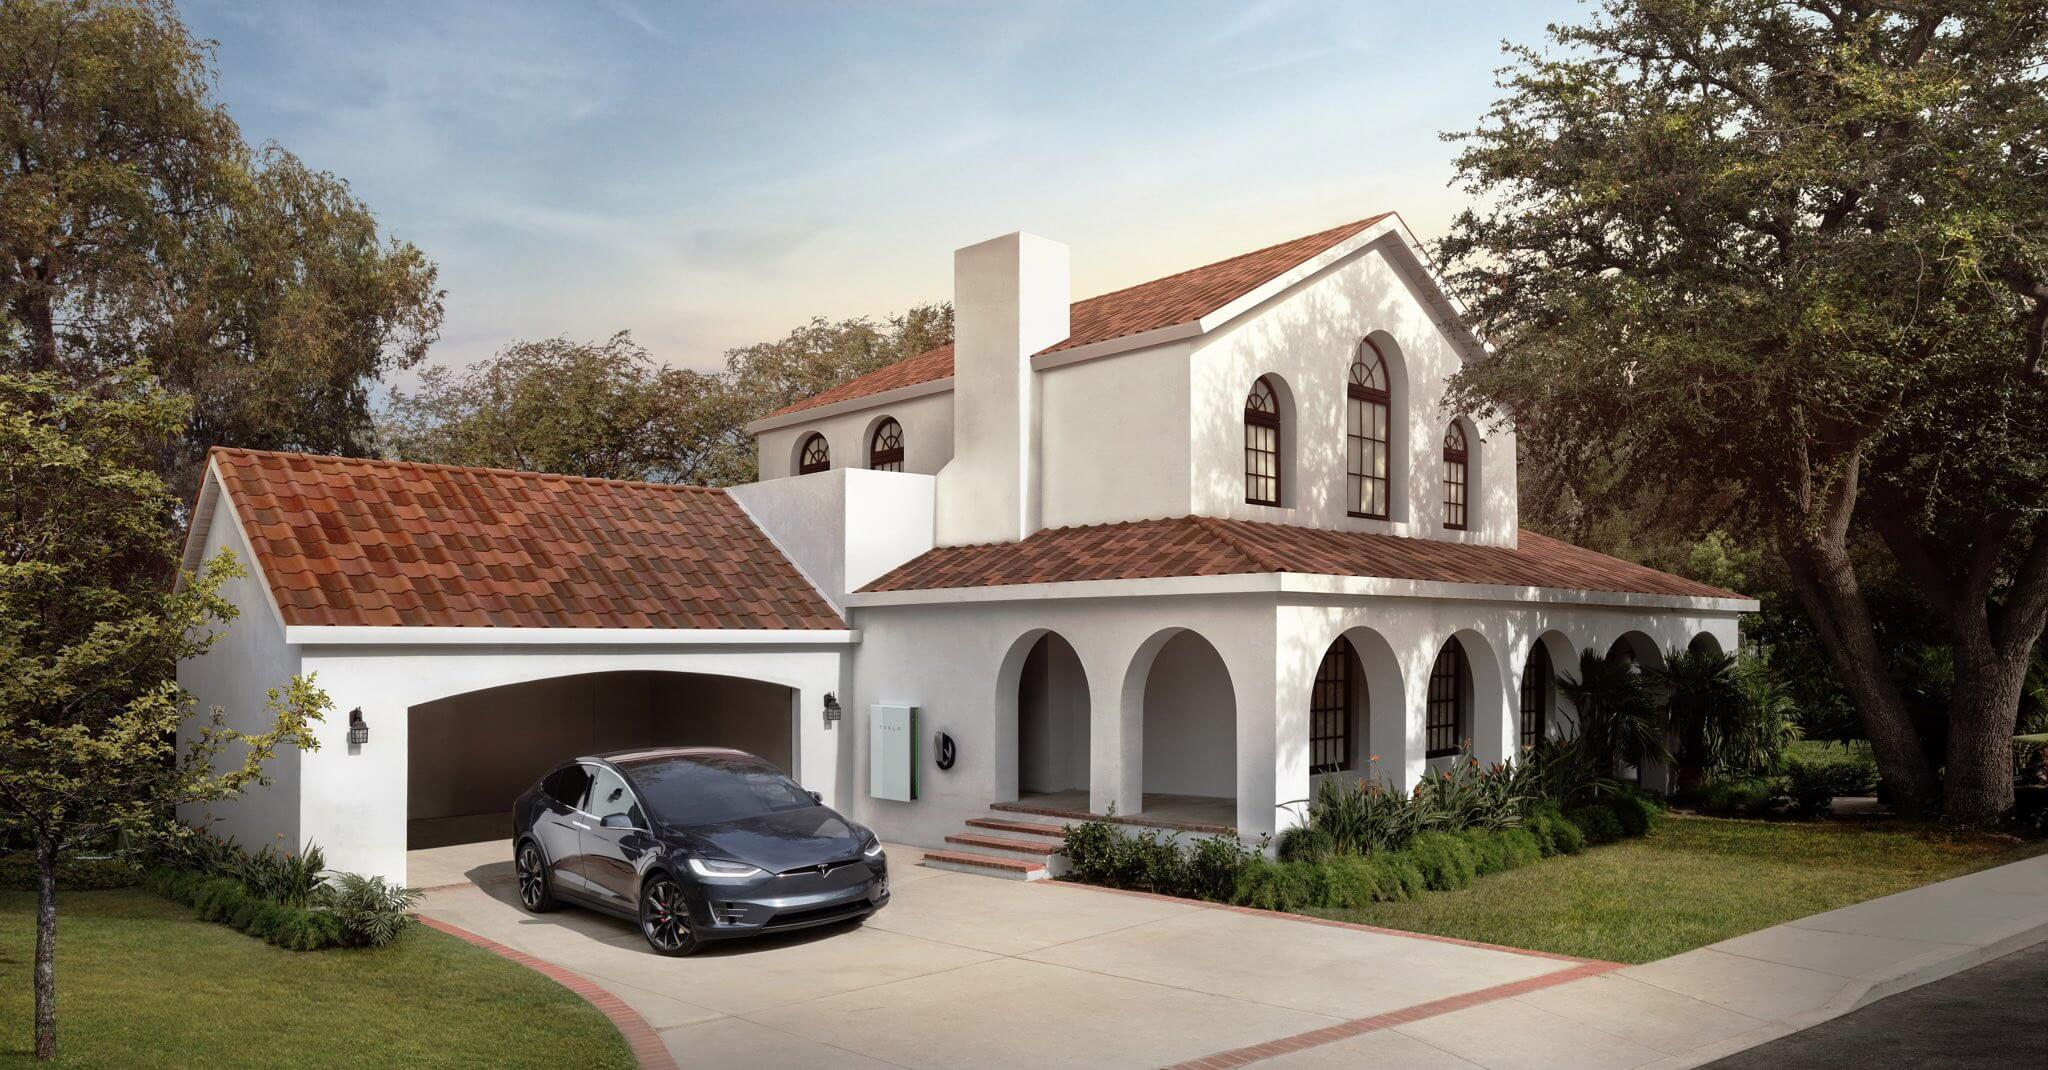 tesla solar dachziegel k nnen ab sofort vorbestellt werden. Black Bedroom Furniture Sets. Home Design Ideas